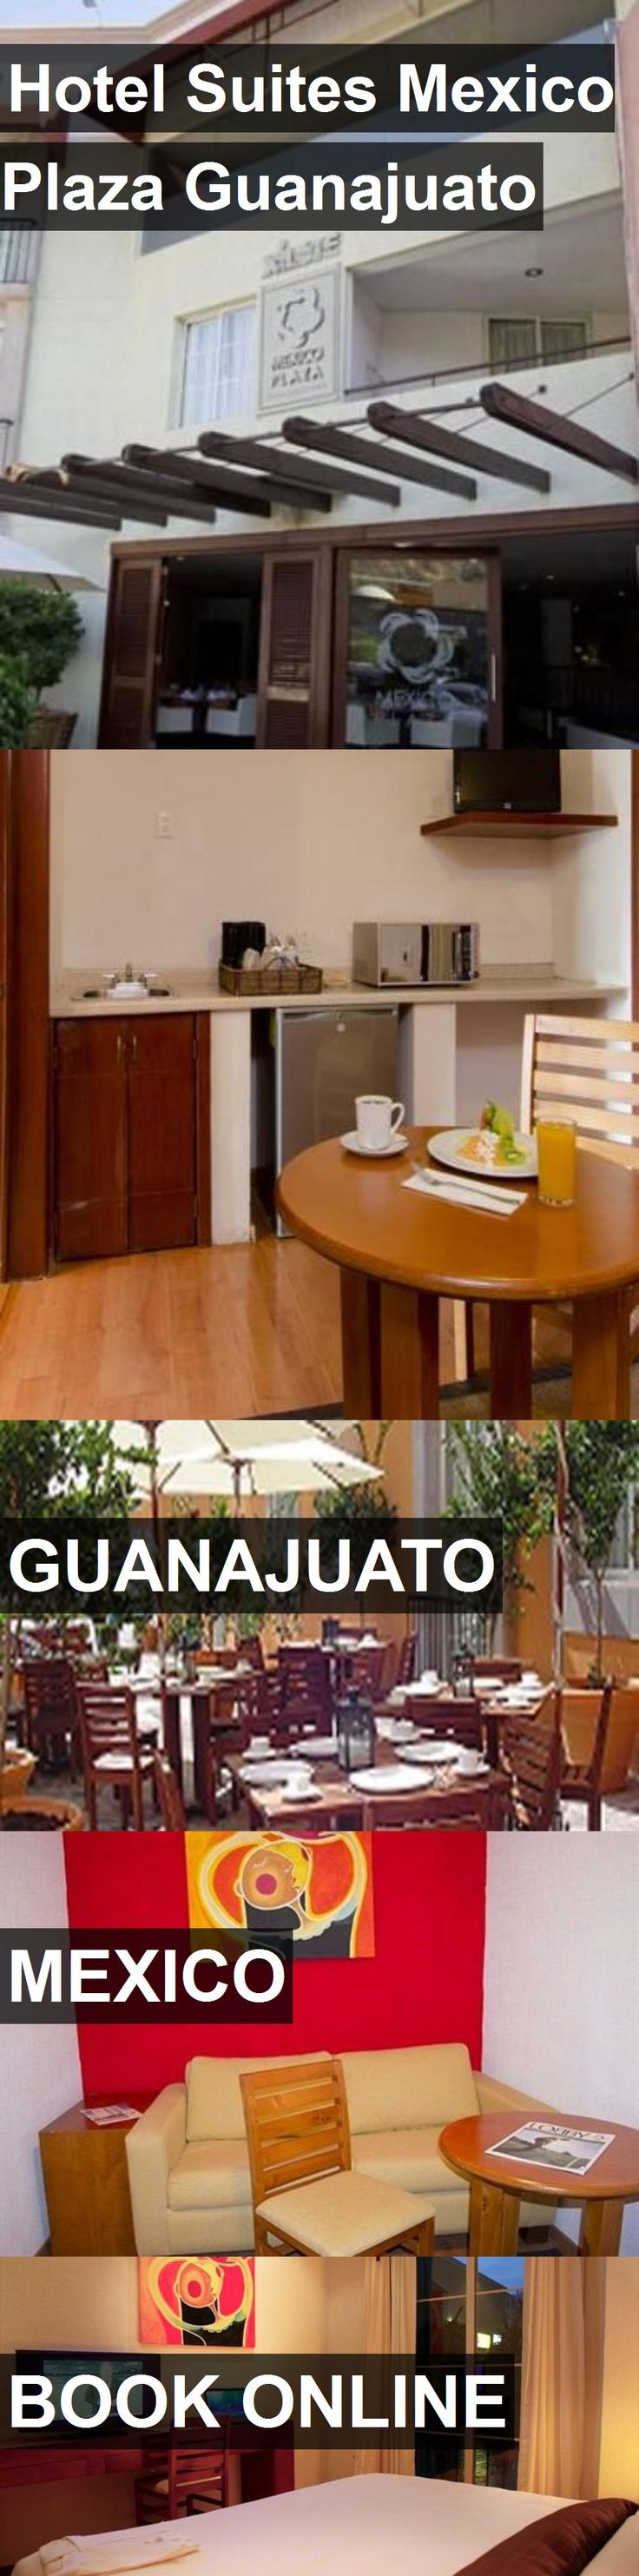 Hotel Suites Mexico Plaza Guanajuato in Guanajuato, Mexico. For more information, photos, reviews and best prices please follow the link. #Mexico #Guanajuato #travel #vacation #hotel